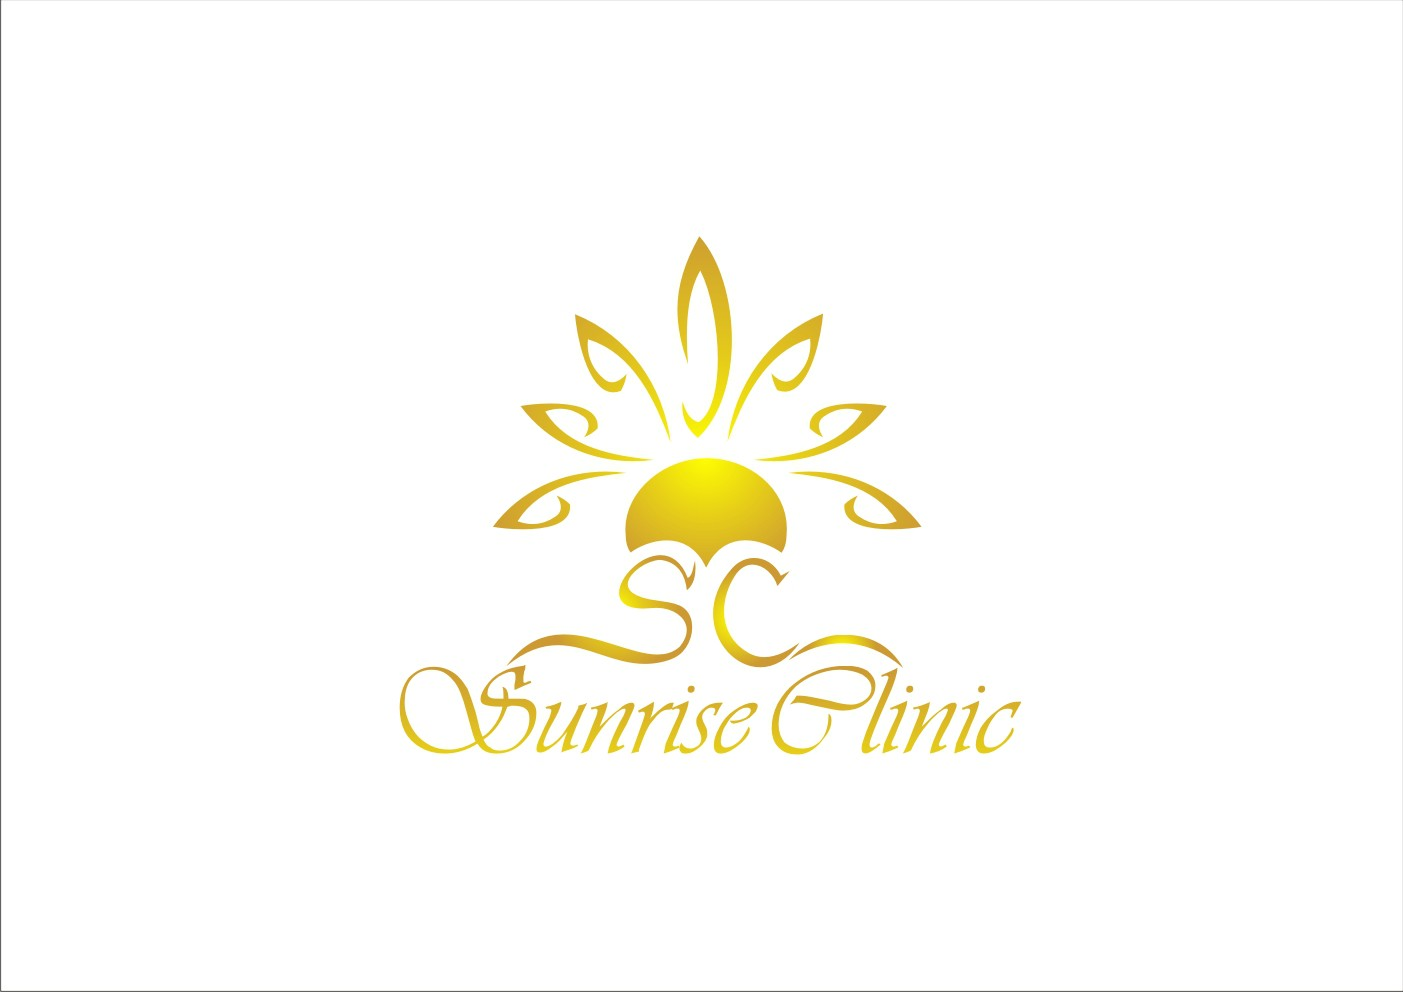 New logo wanted for Sunrise Clinc